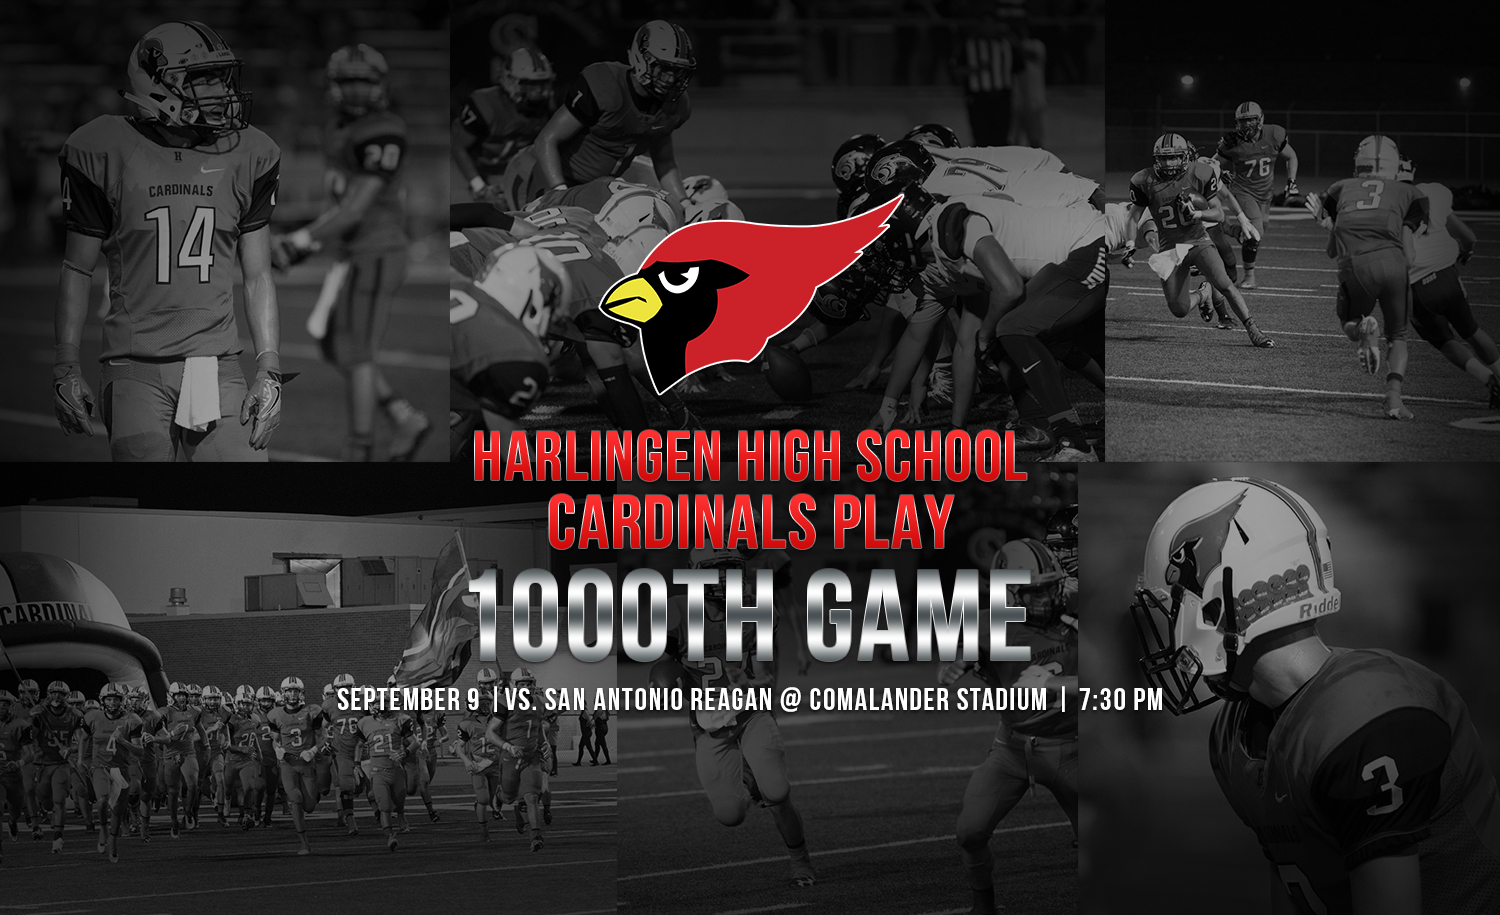 Harlingen High School Cardinals play 1000th game